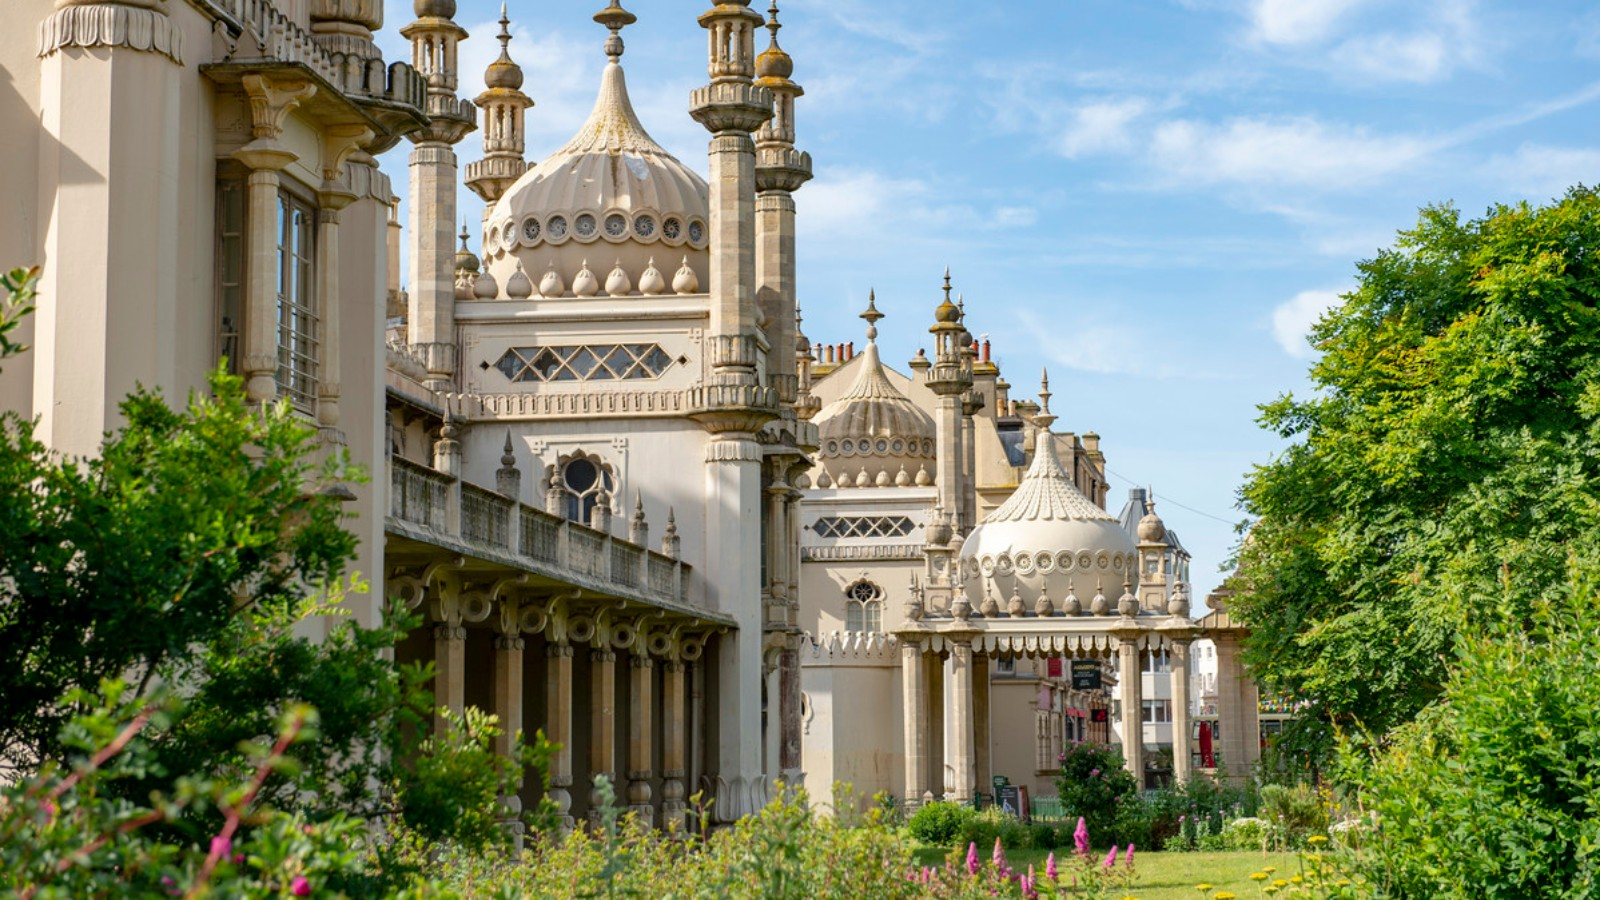 Credit - Royal Pavilion & Museums Trust, Brighton & Hove